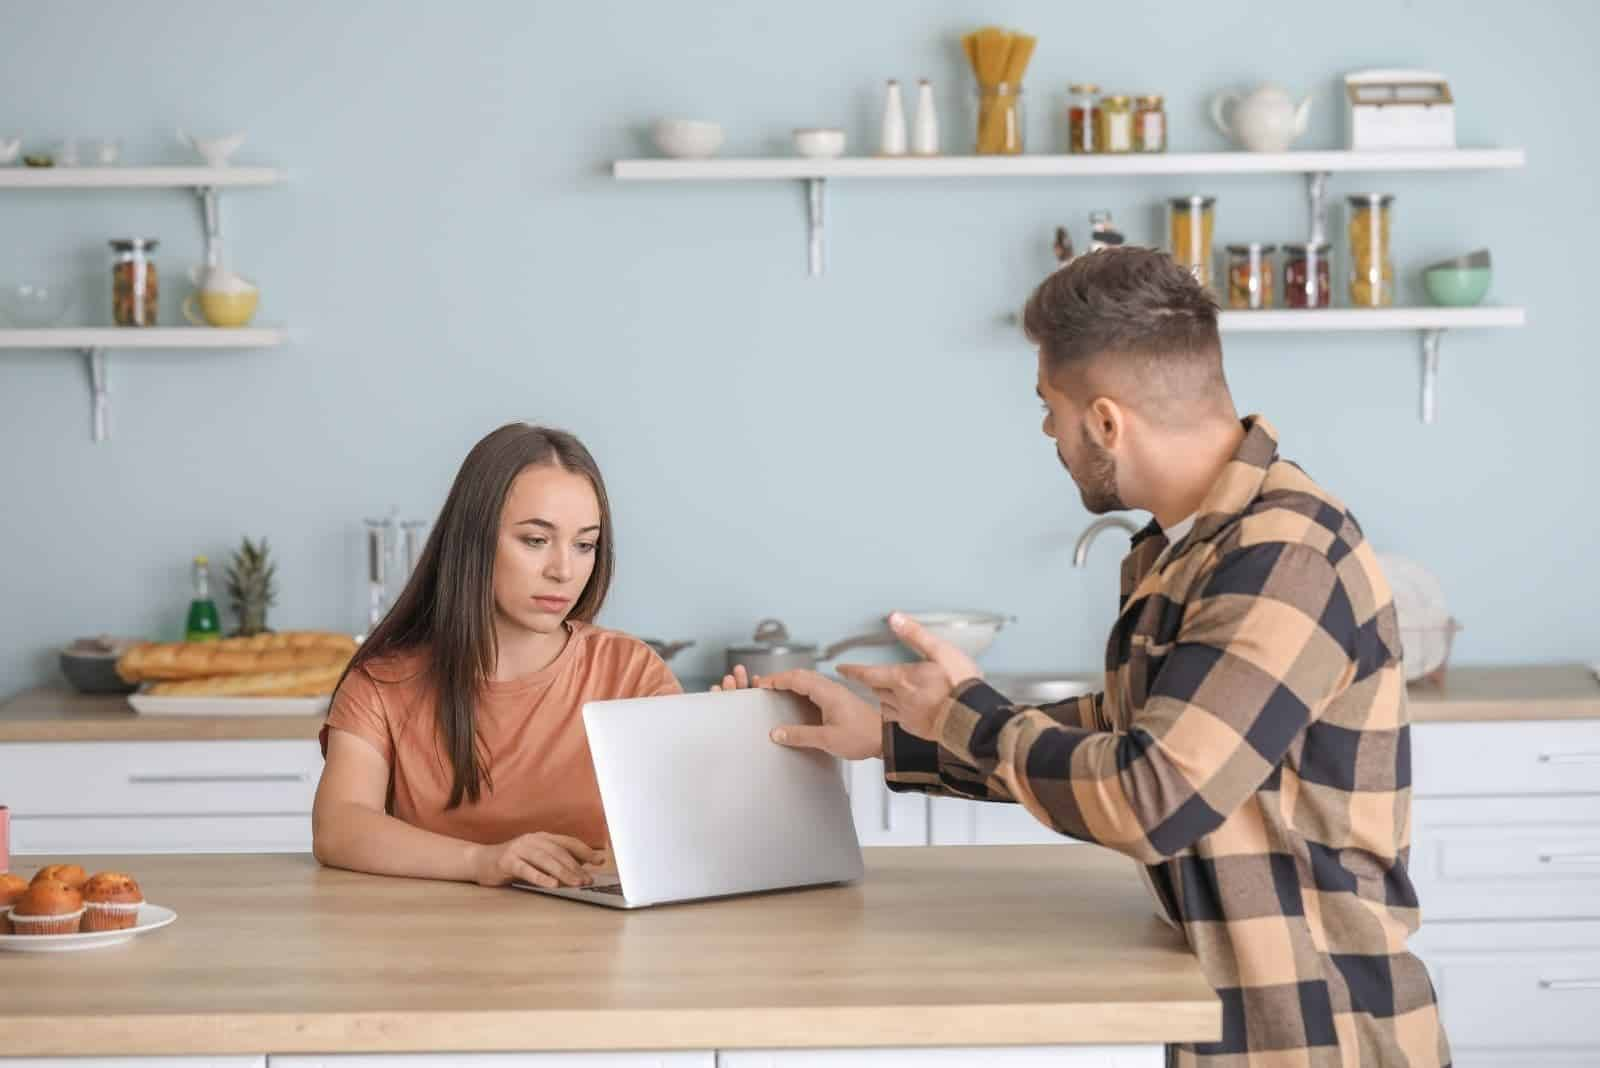 man closing woman's laptop upset while woman working on laptop in the kitchen